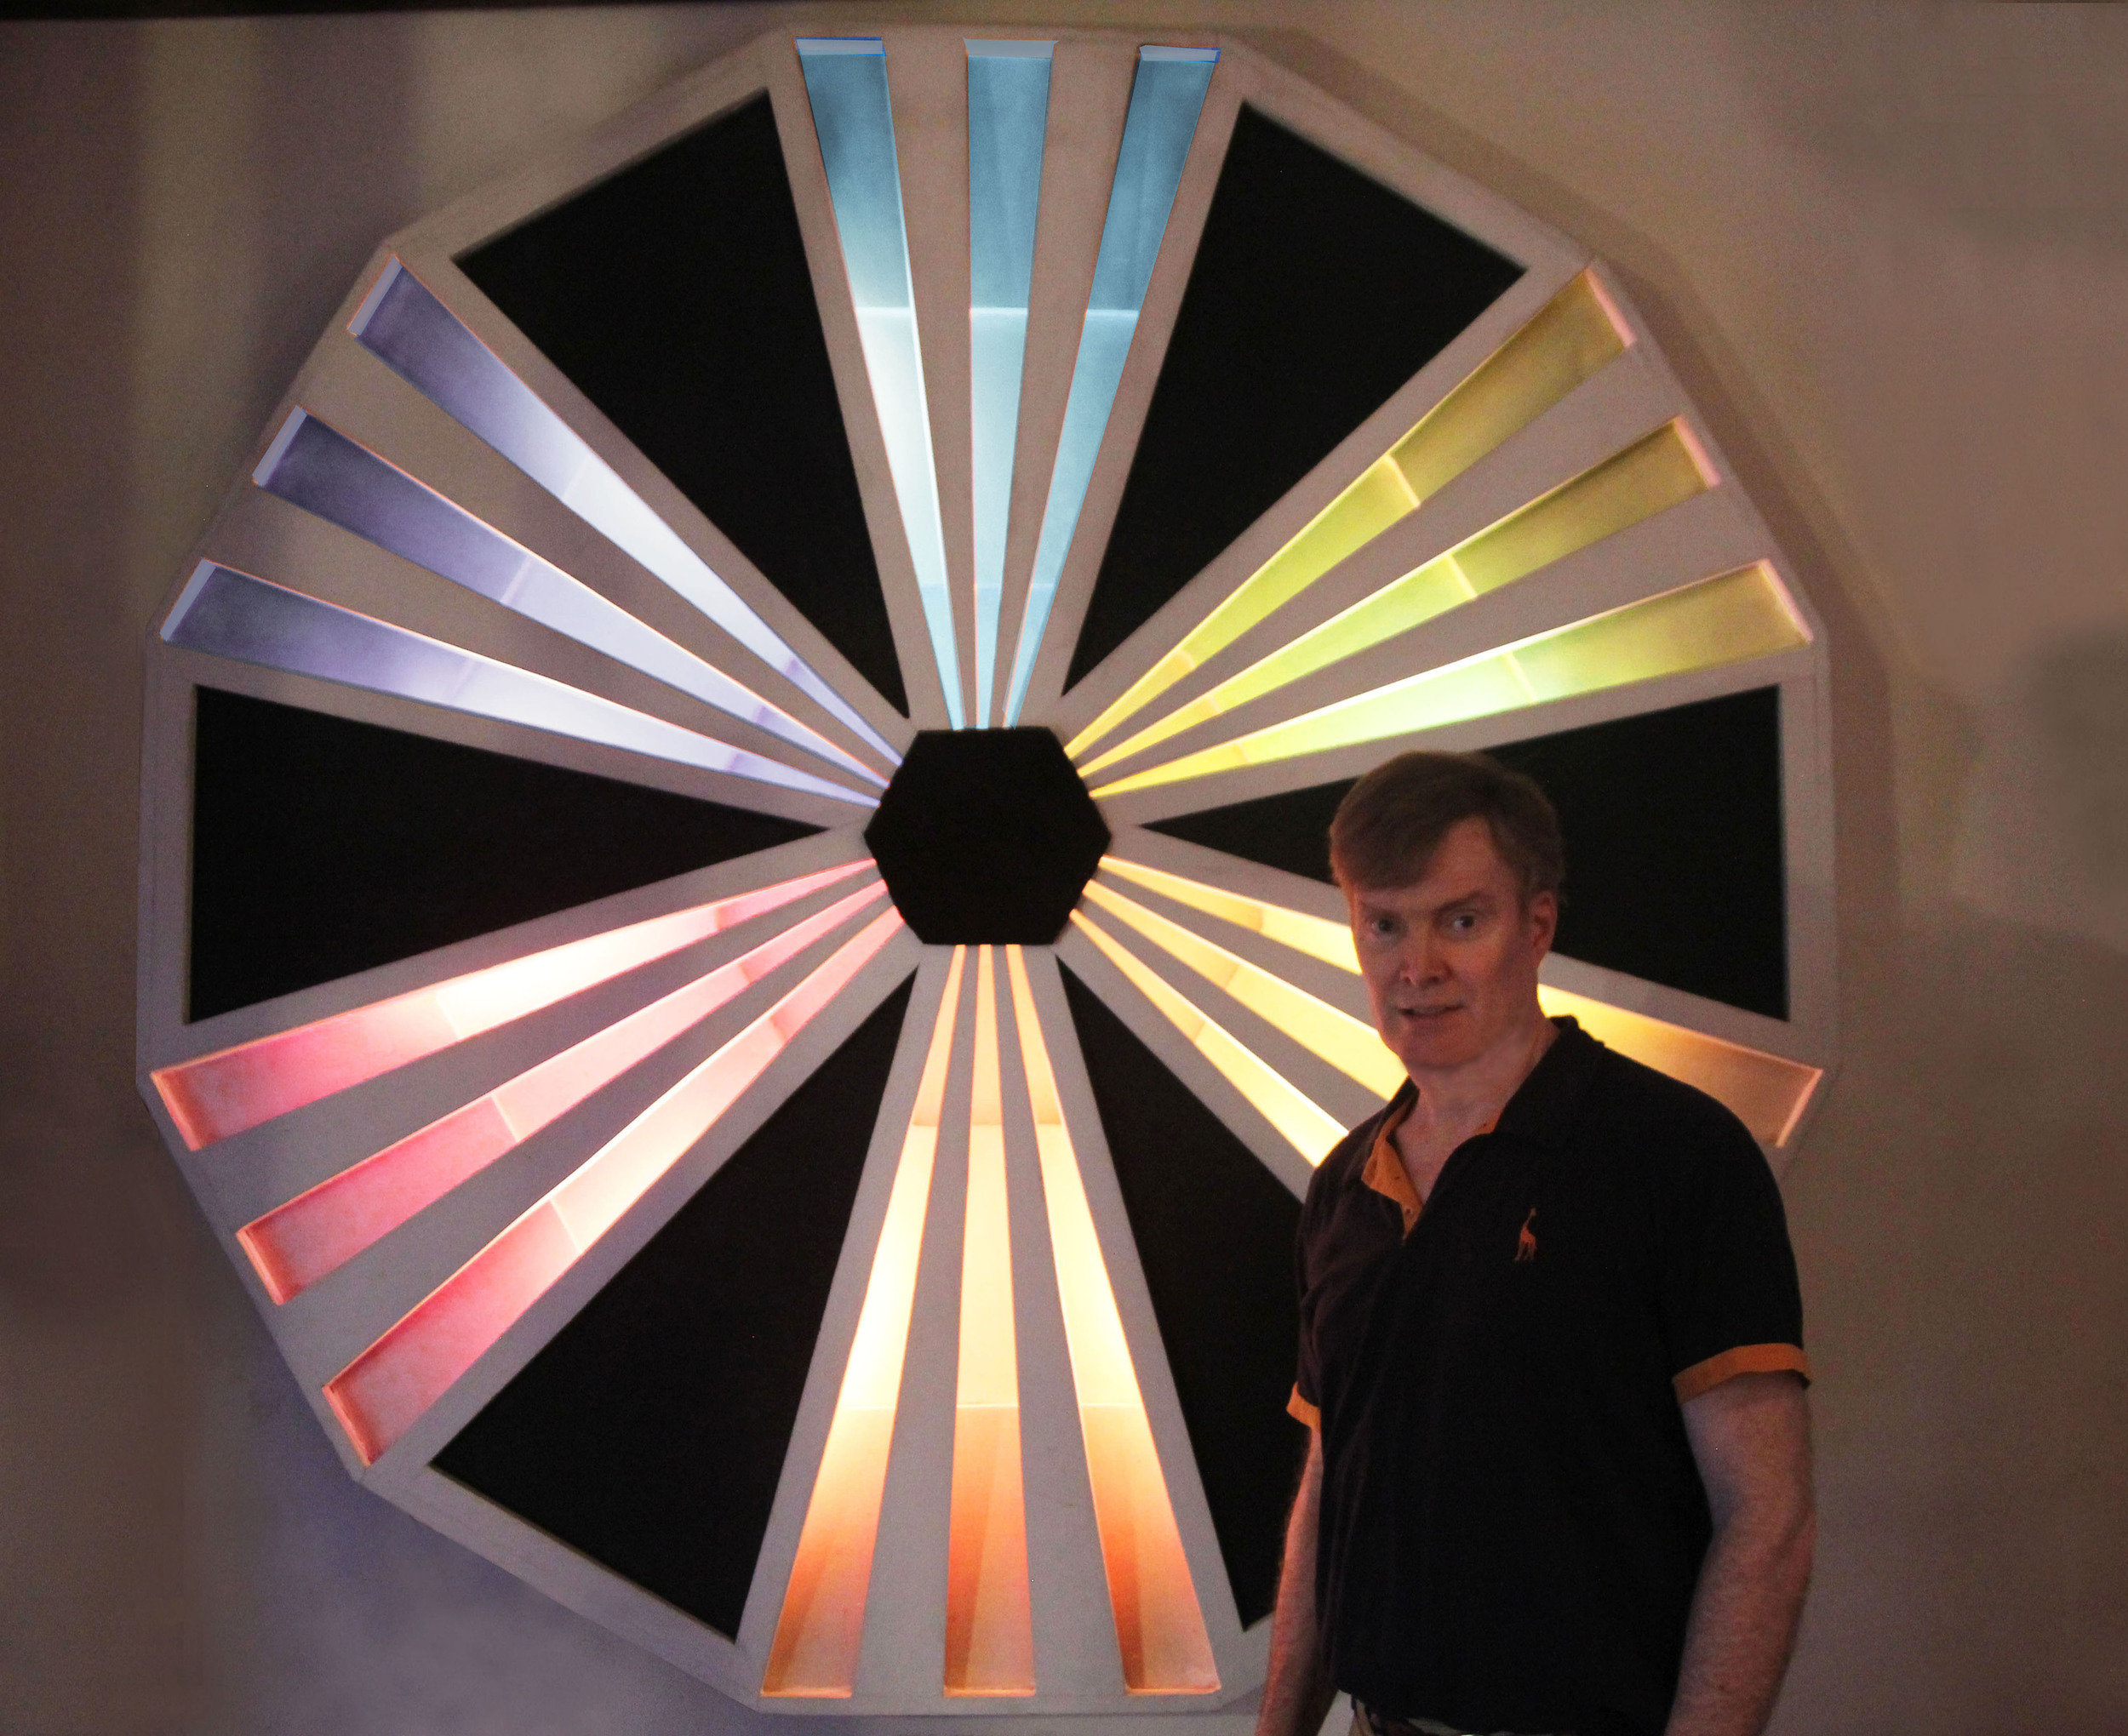 5 - Electrified sculpture with reflected colors made with wood.jpg